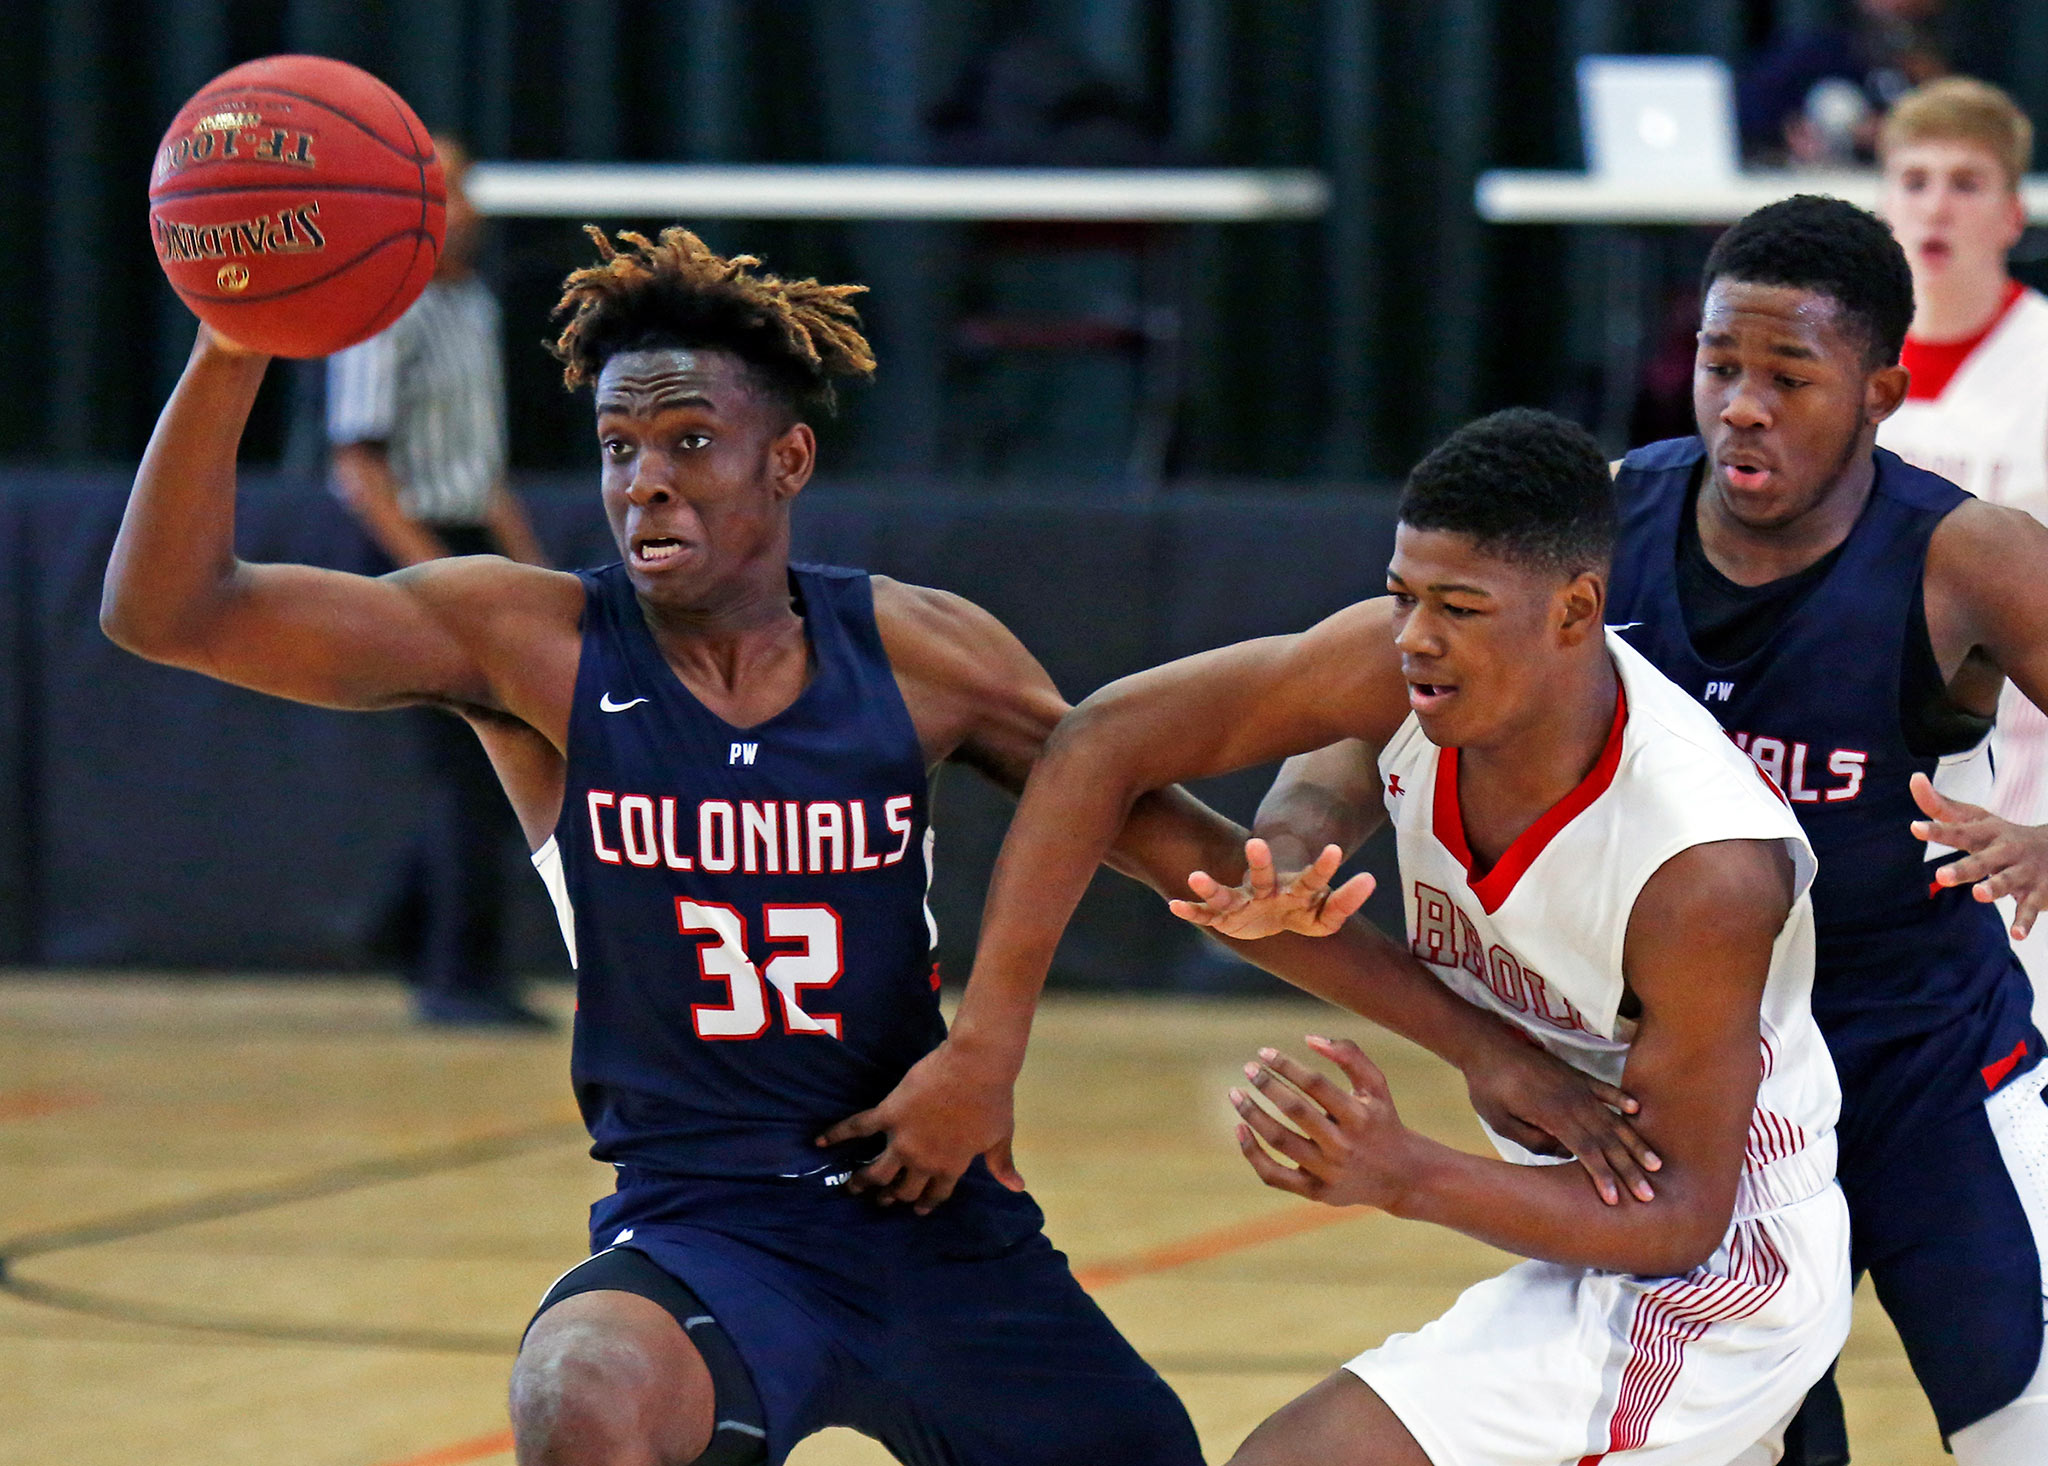 Plymouth Whitemarsh's Alan Glover (32) comes away with the ball after he and the Colonials' Ahmin Williams (right) double-teamed Archbishop Carroll's Ny'Mire Little during the first quarter of a game in the Diane Mosco Foundation Shootout Against Cancer boys' basketball showcase Saturday, Dec. 16, 2017, at Archbishop Wood. PW went on to win, 66-53. LOU RABITO / Staff